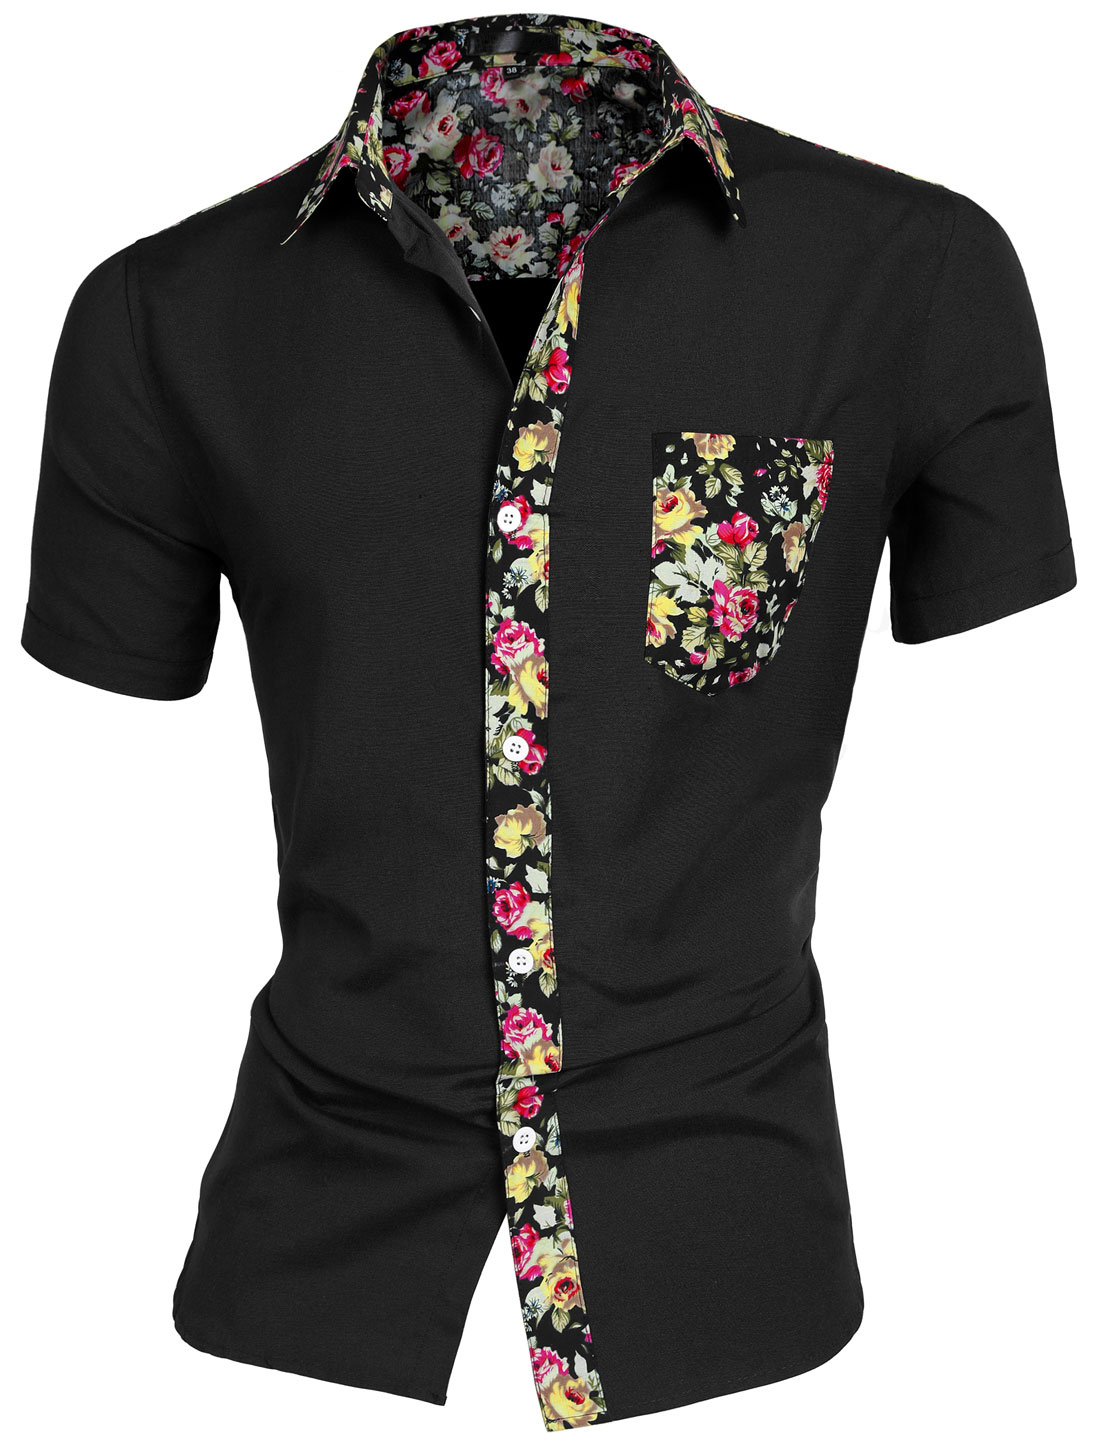 Men Short Sleeve Floral Pattern Single Breasted Slim Fit Shirts Black L